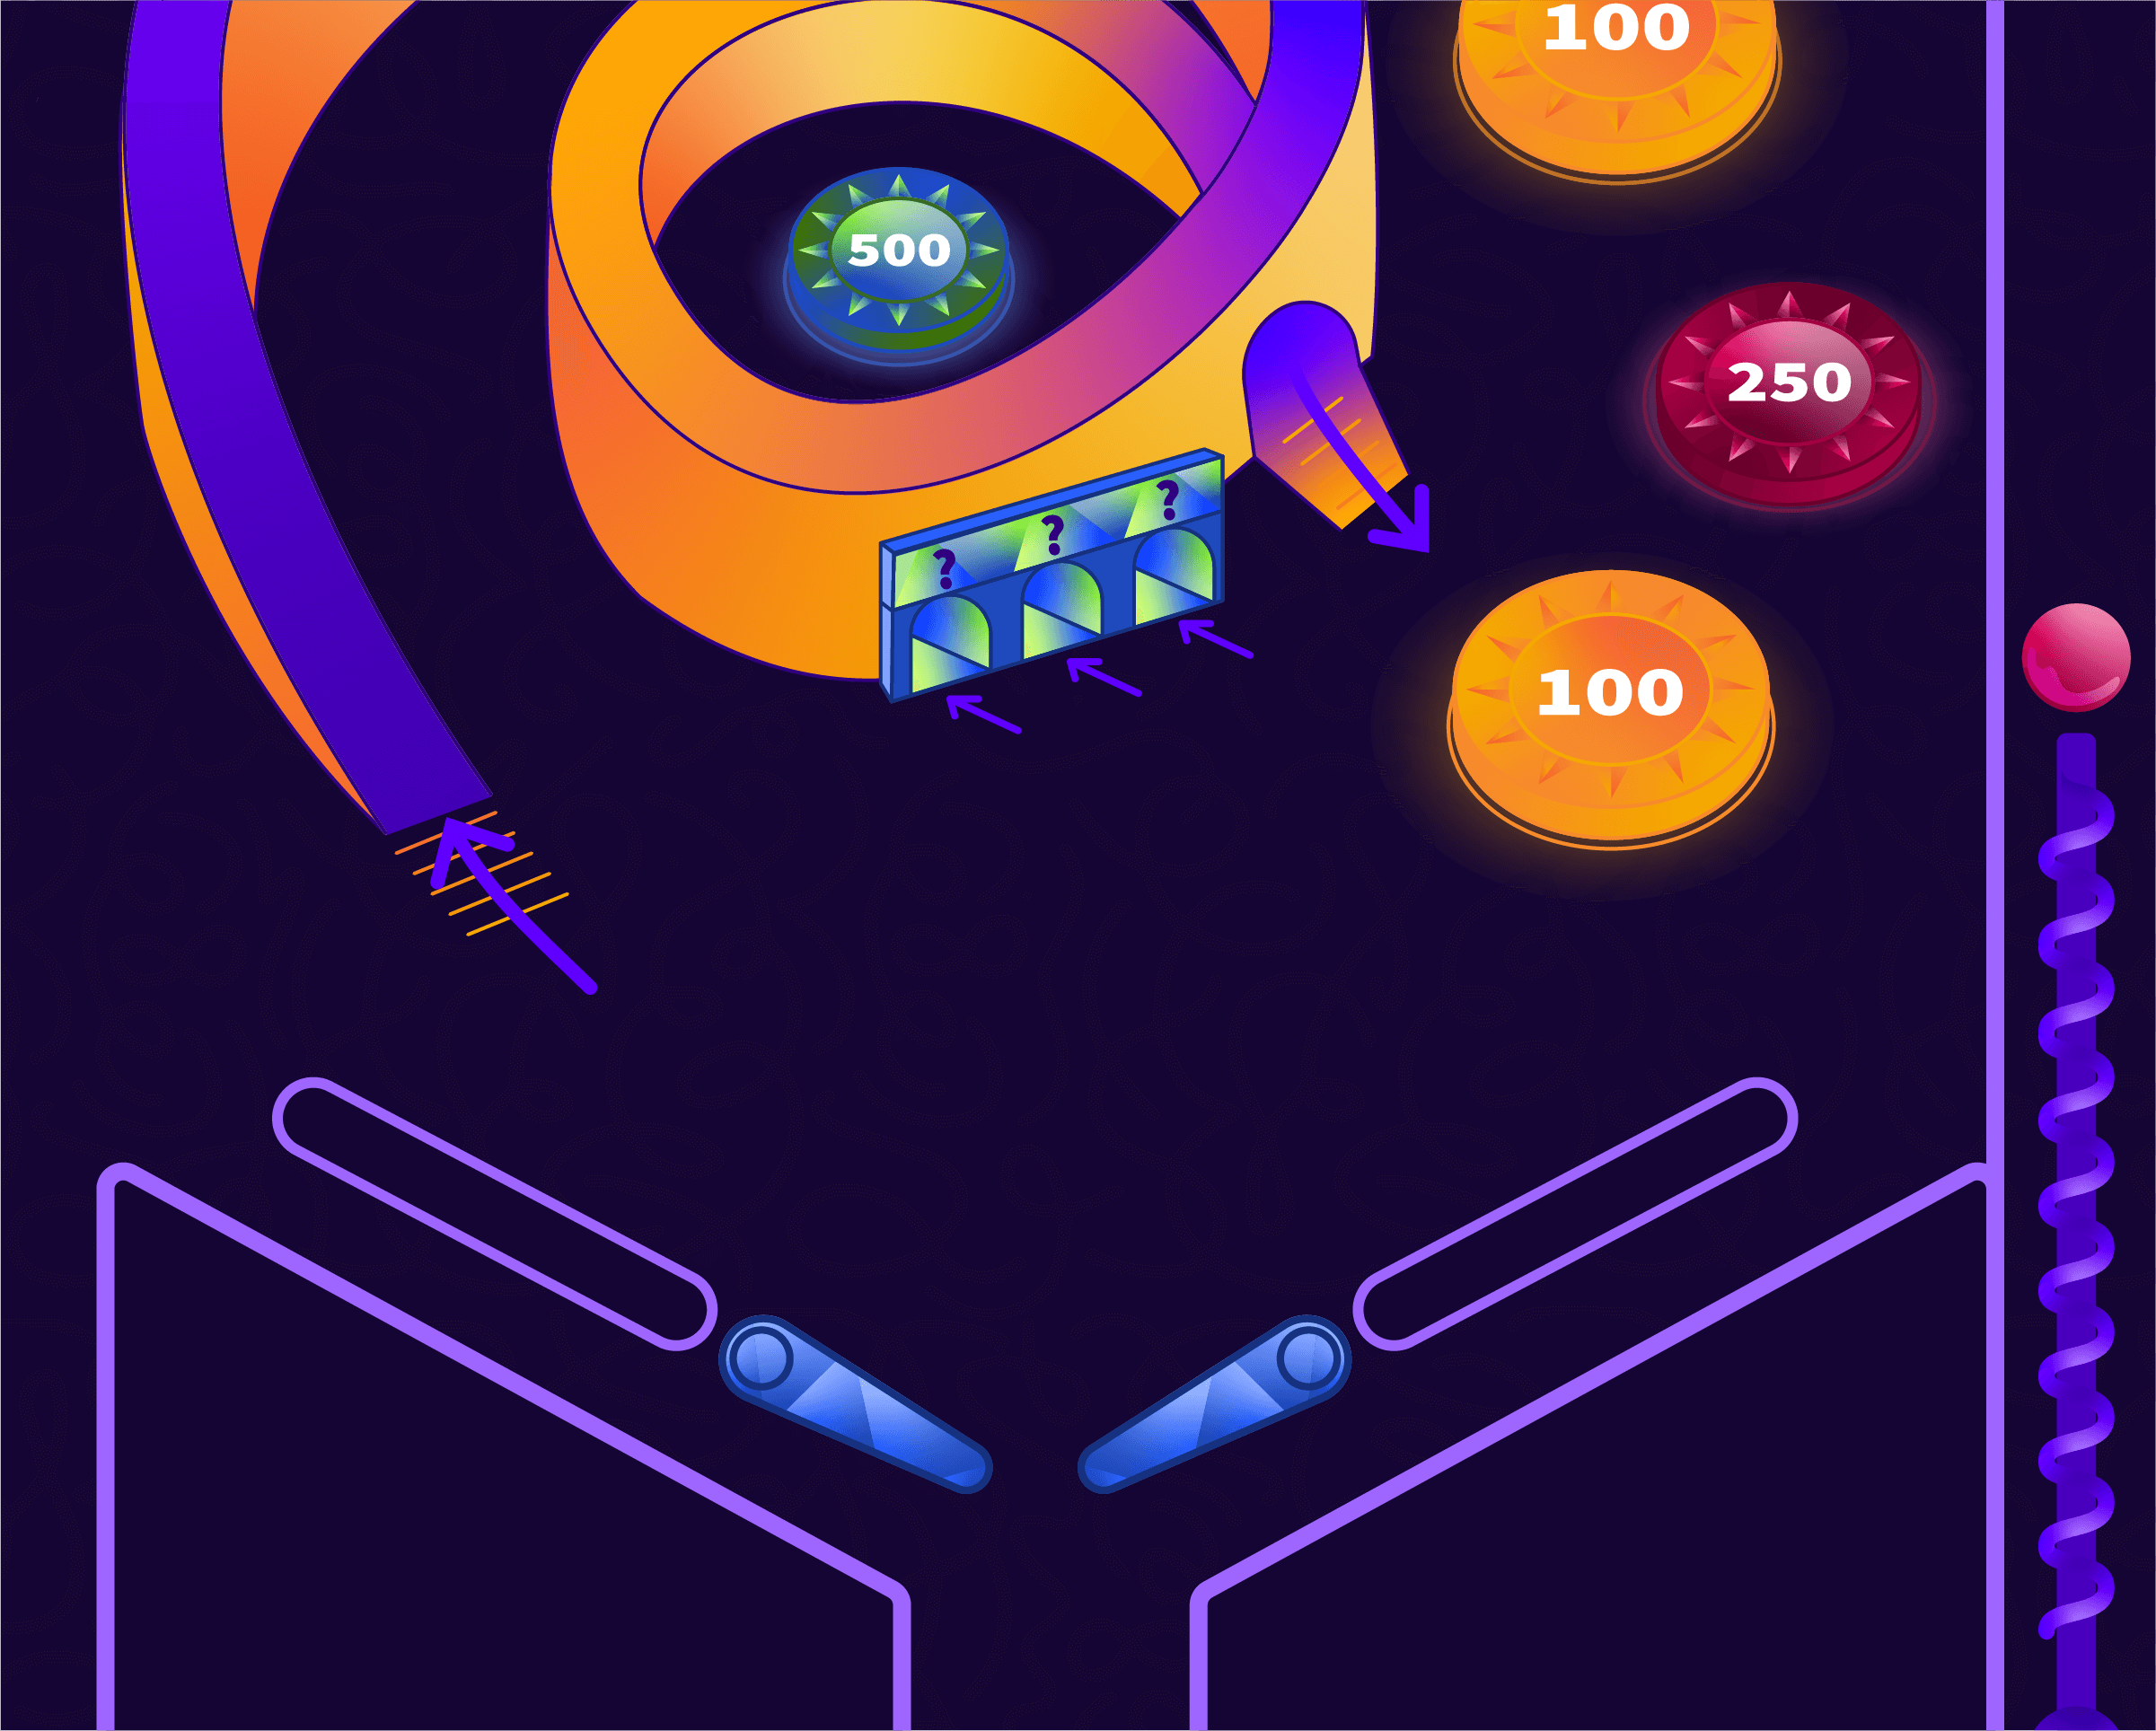 an illustration of the playfield of a pinball machine